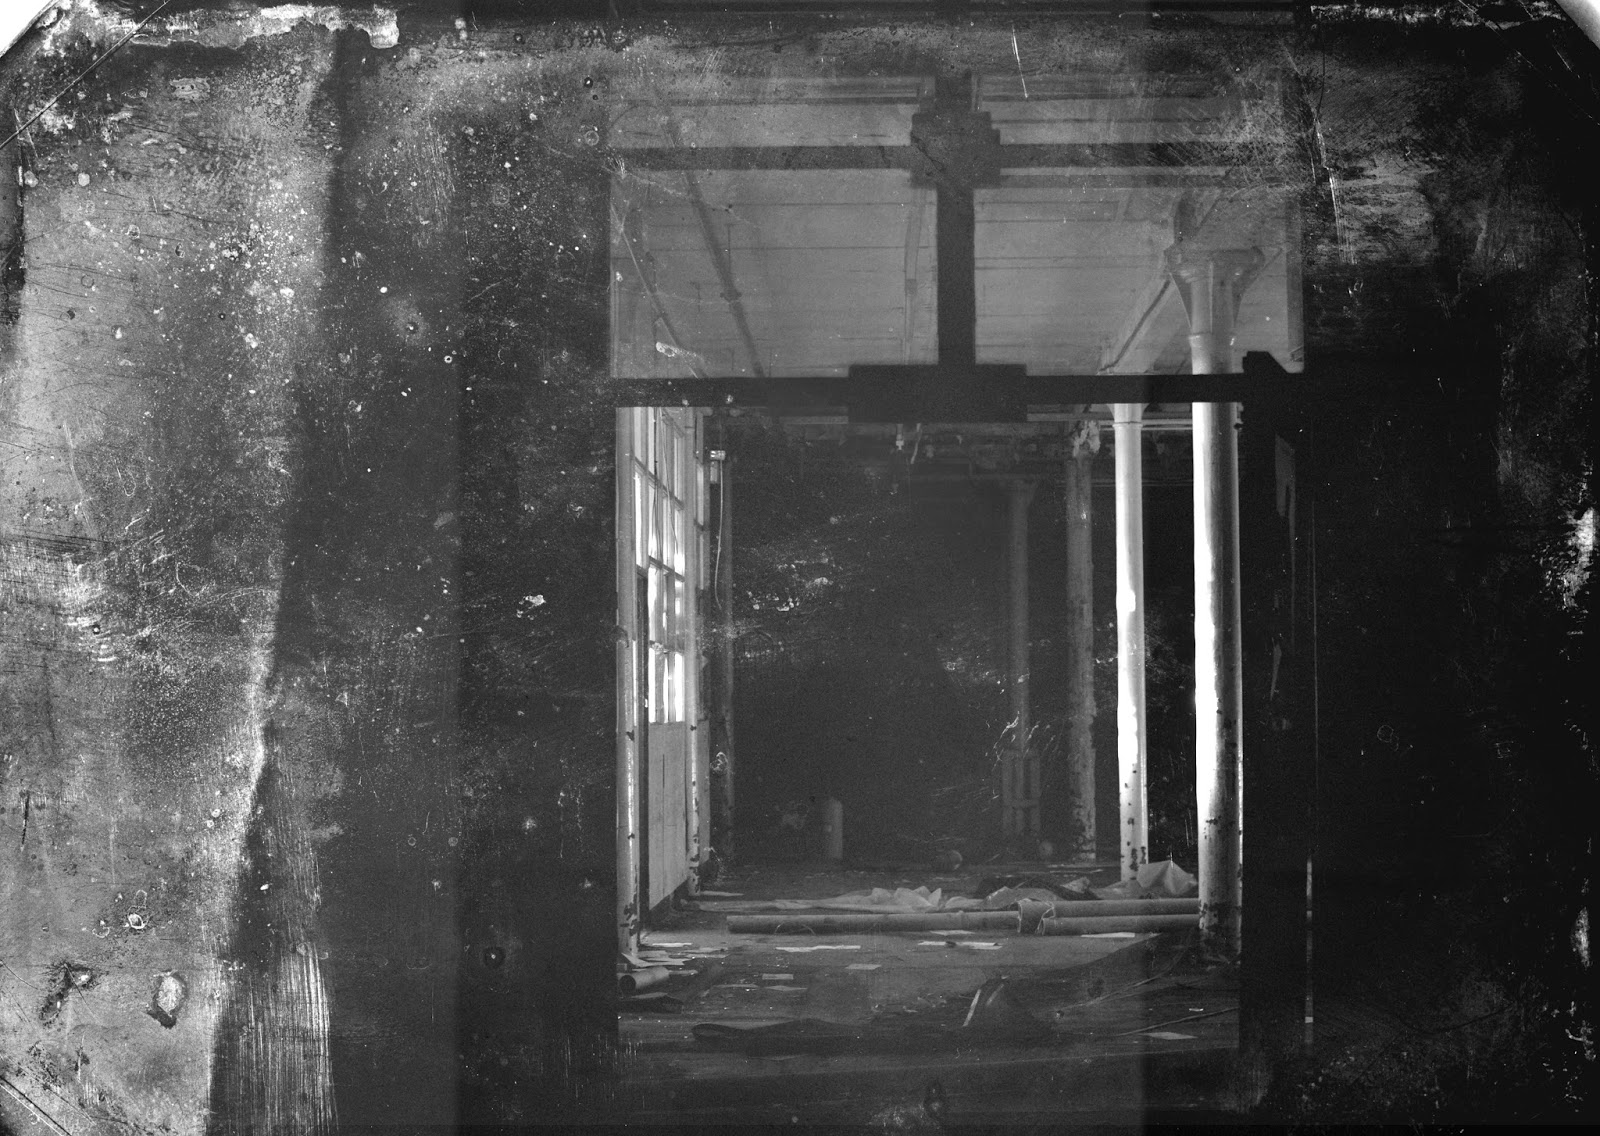 photography, lomo, black and white, texture, film, urbex, exploration, urban decay, derelict, abandoned, adventure, explore, light leaks, damaged photo, atmosphere, experimental, shadows, shades, colour, light, time, history, individual, experience, uncanny, surreal, dream like, real, everyday, fragility, mill, factory, oldham, rochdale, manchester, hartford mill, rock nock mill, pug, misplace